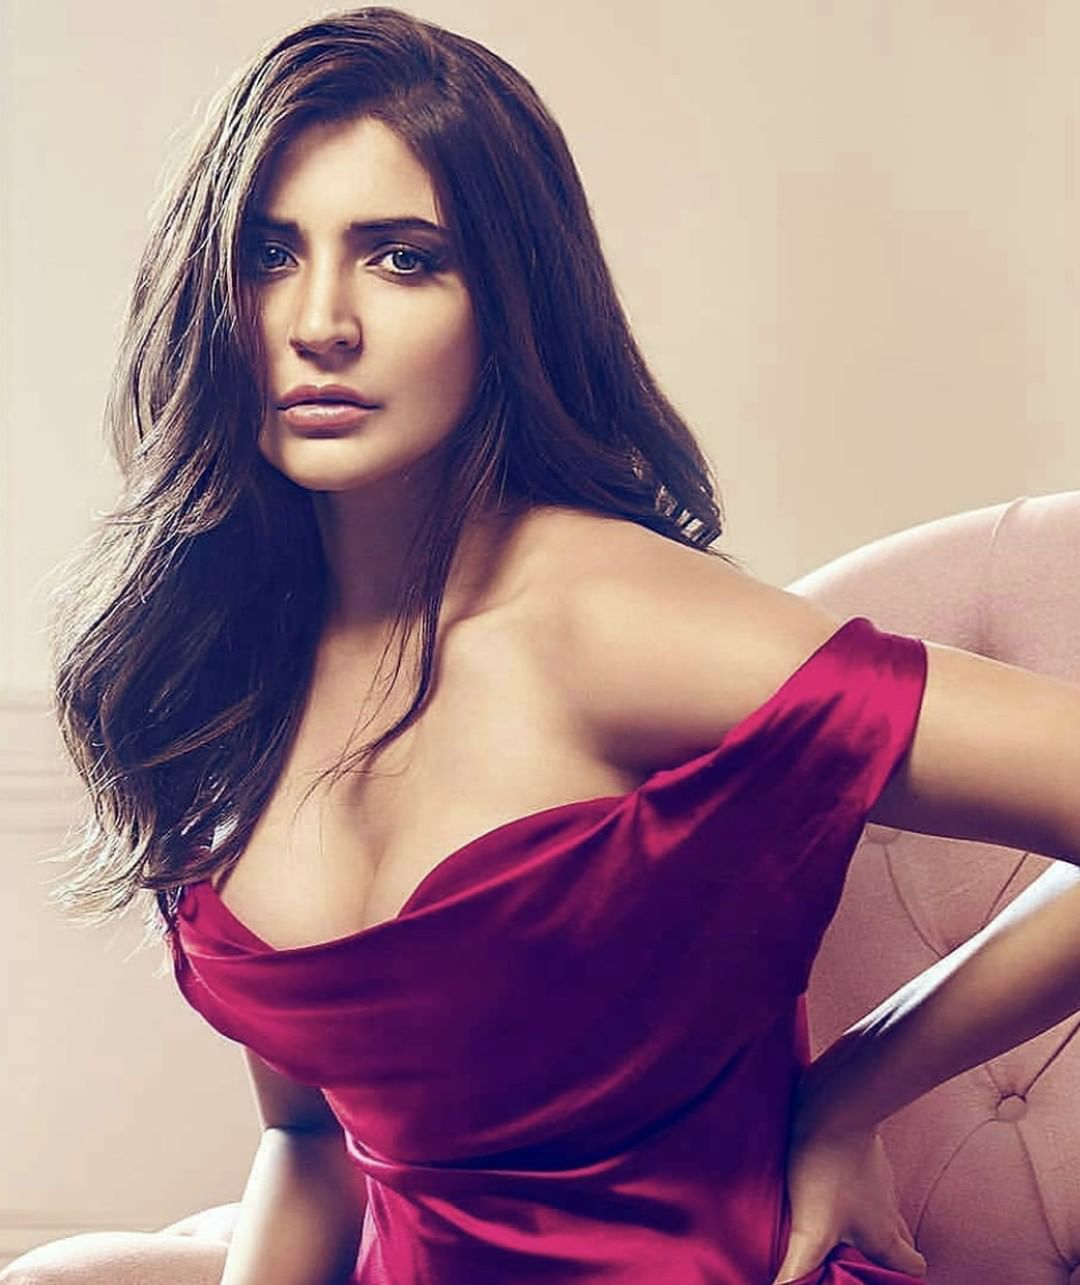 Anushka sharma open sexy photo-4491